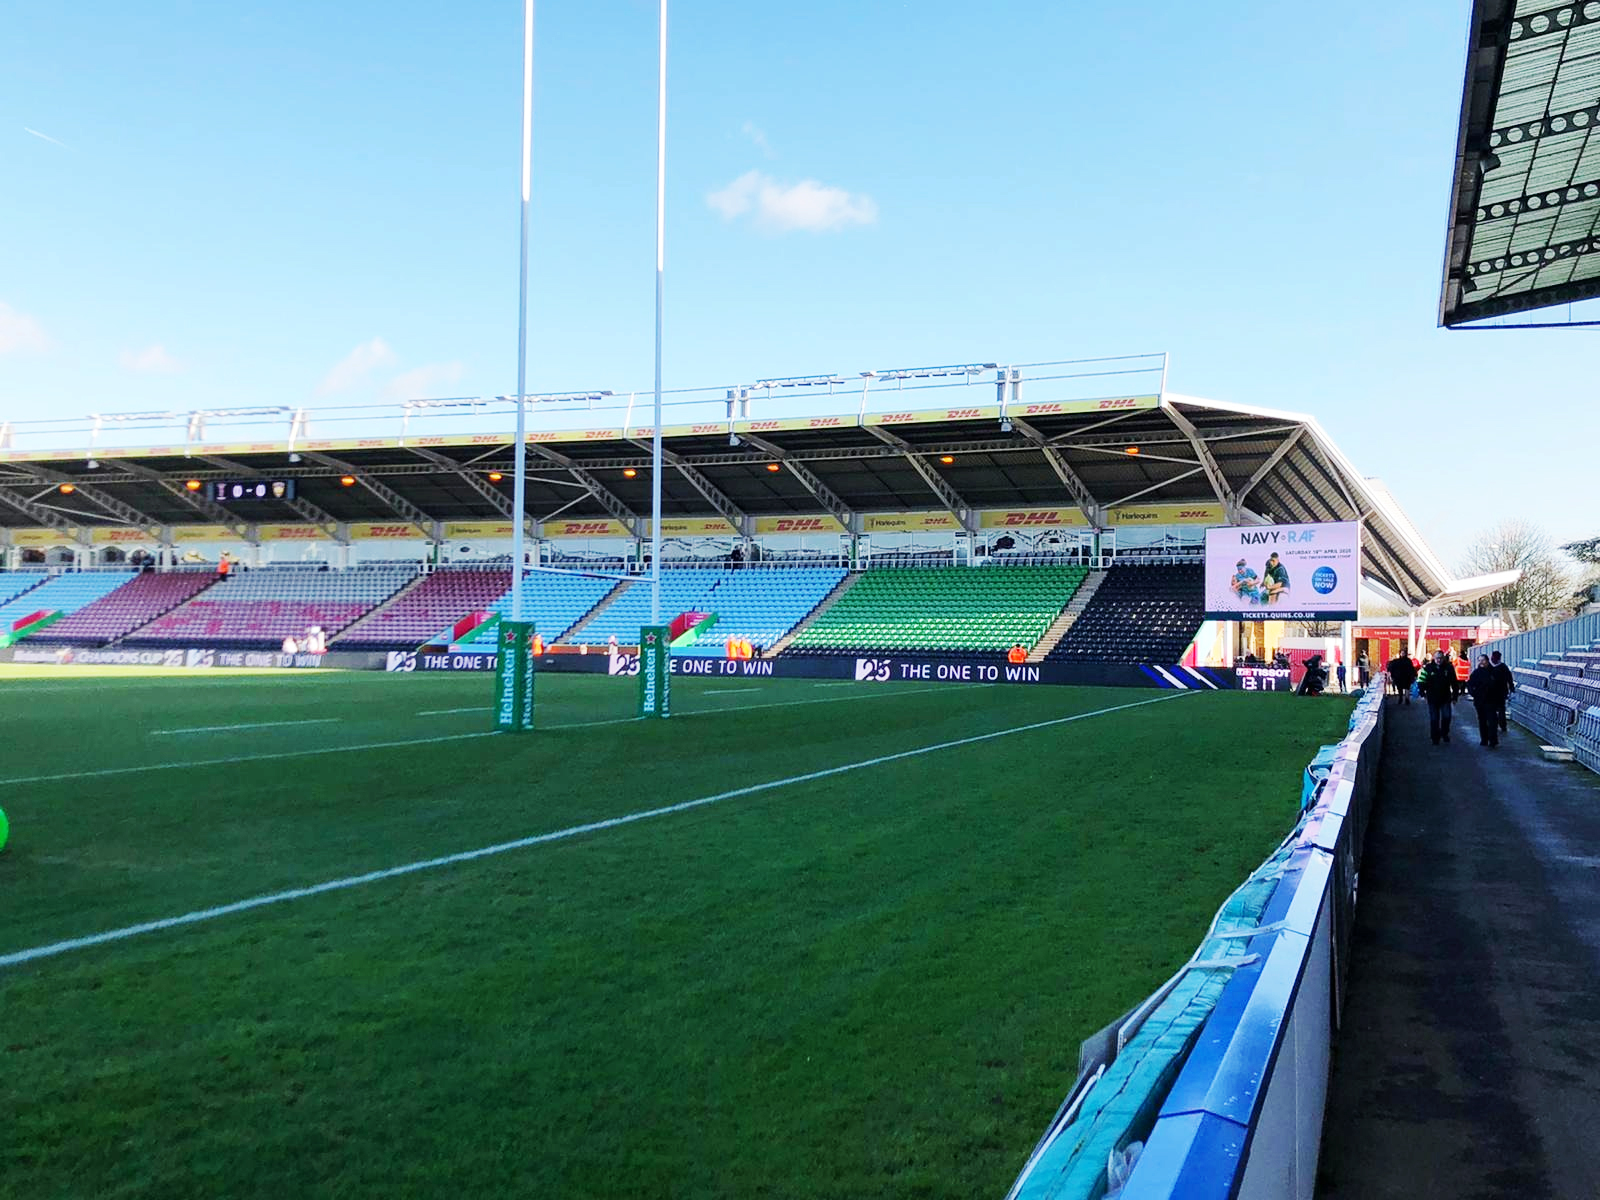 Harlequins-Rugby-Screen-Concept-Group-1